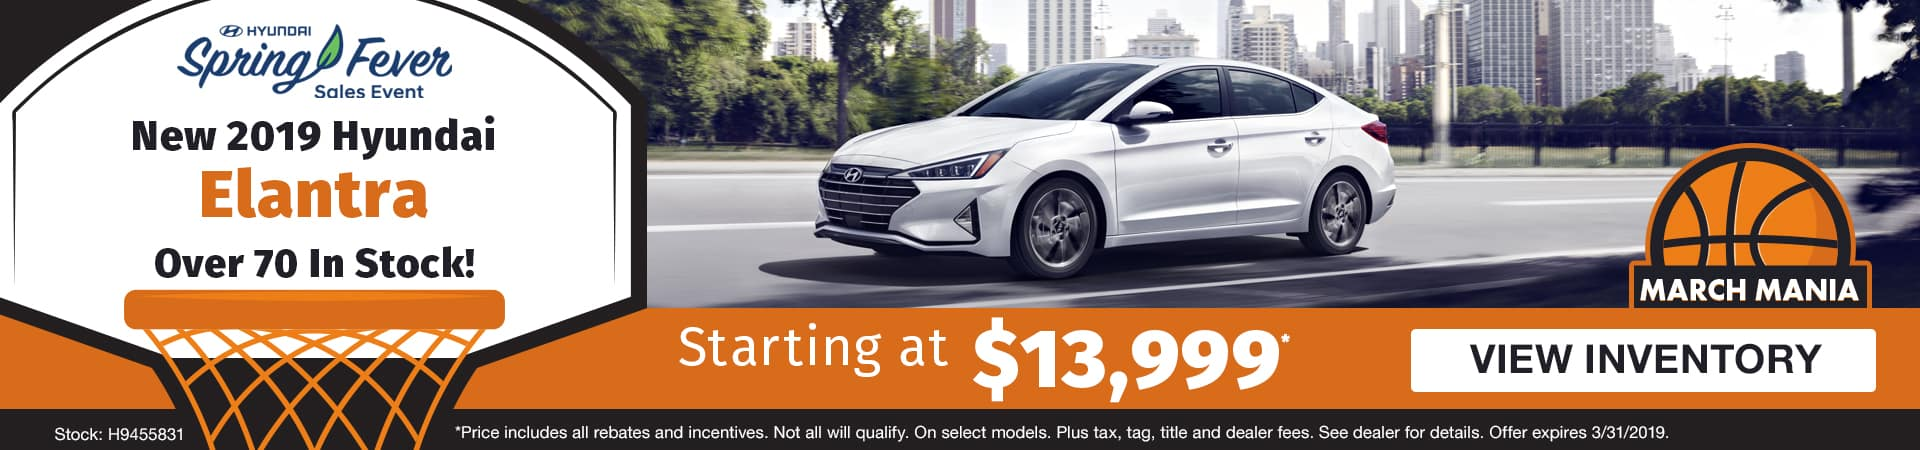 Drive a new 2019 Hyundai Elantra starting at just $13,999 in Murfreesboro TN